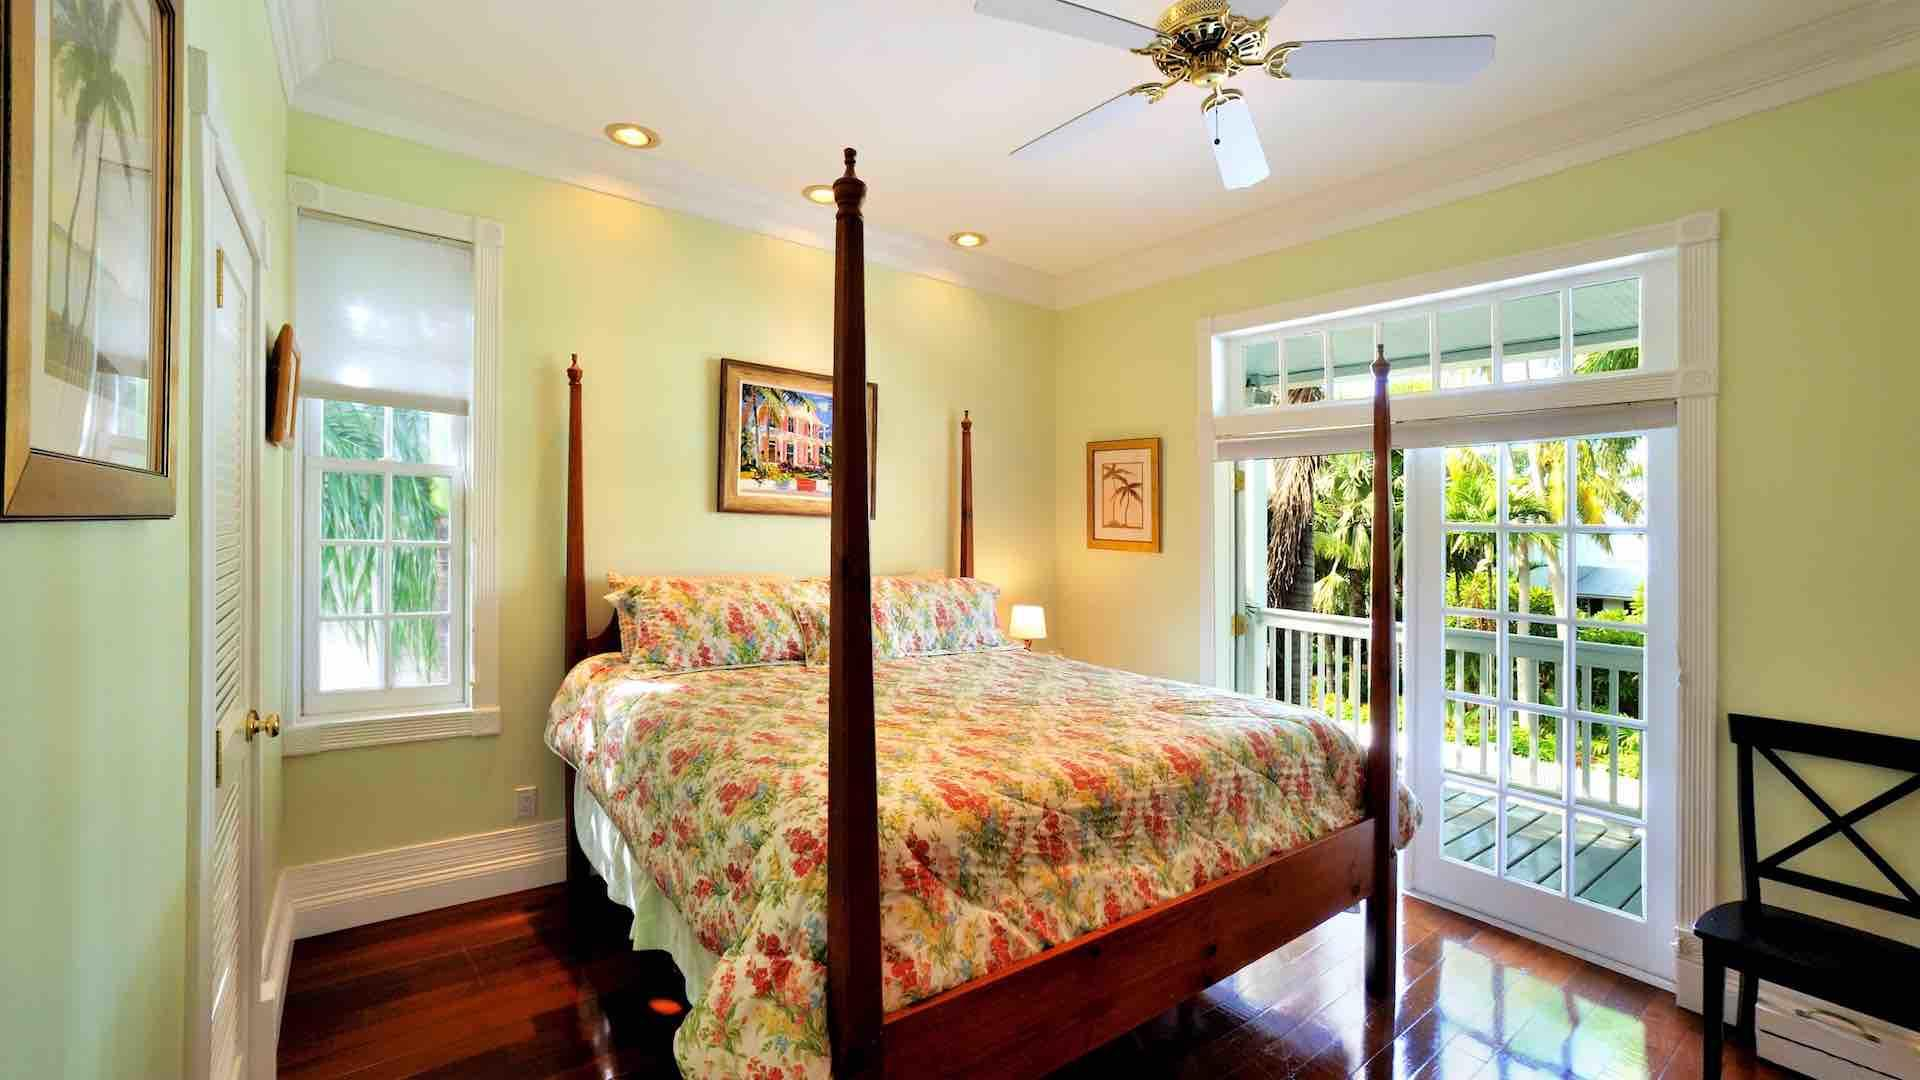 The fifth master suite has a King bed and French doors to the front porch...